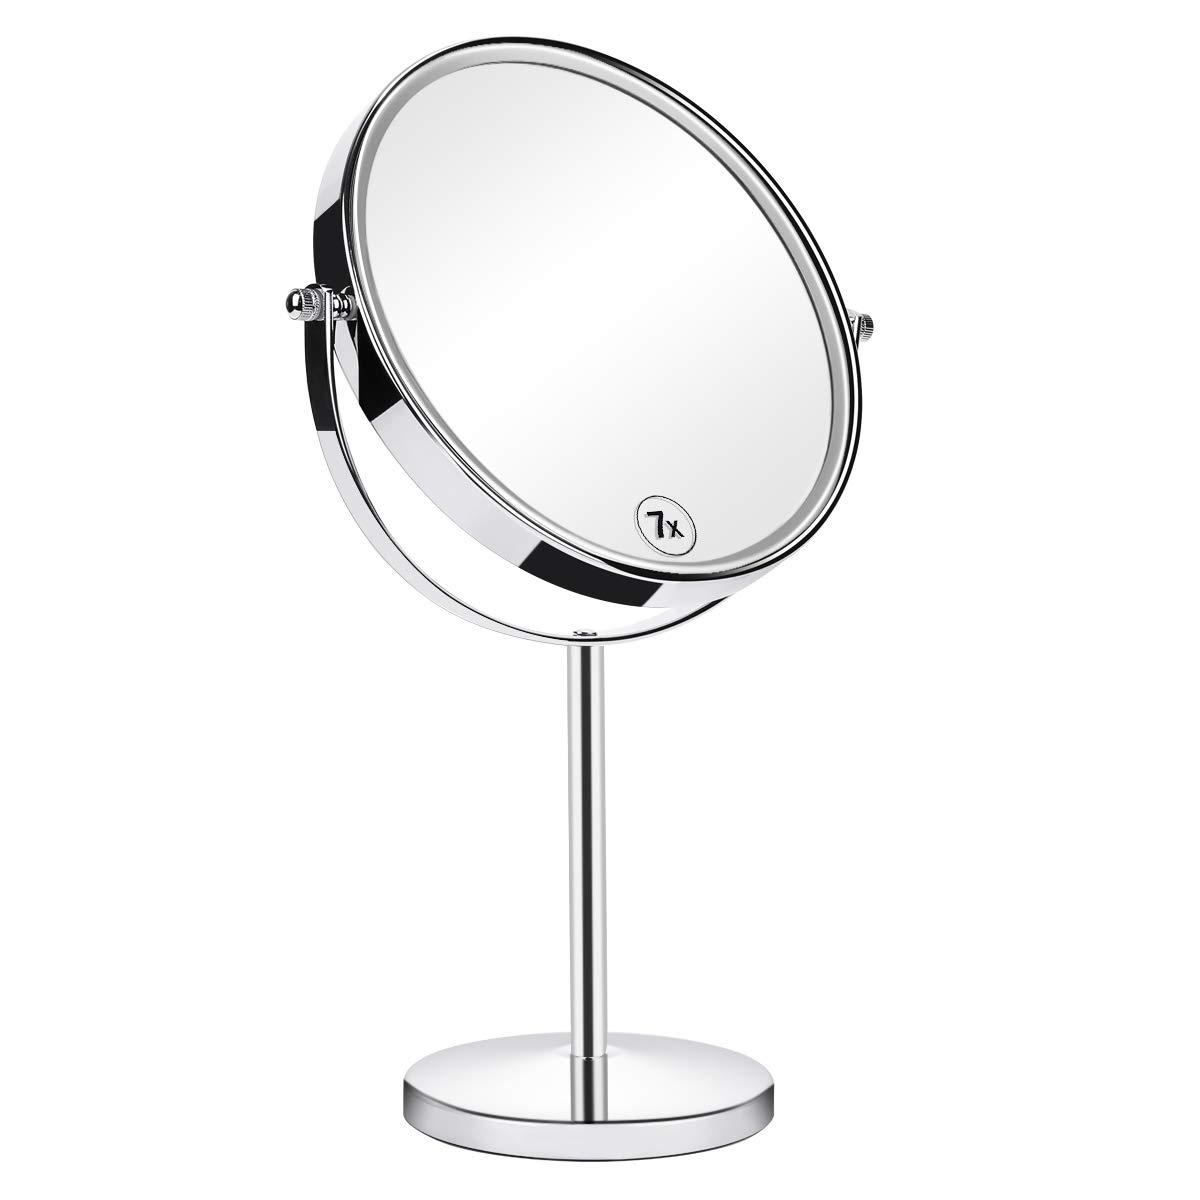 Orange Tech 8-Inch Large Double Sided 1X/7X Makeup Mirror, 360 Degree Swivel Magnifying Vanity Mirror, Travel Mirror with Stand and Removable Base, 15 inch Height